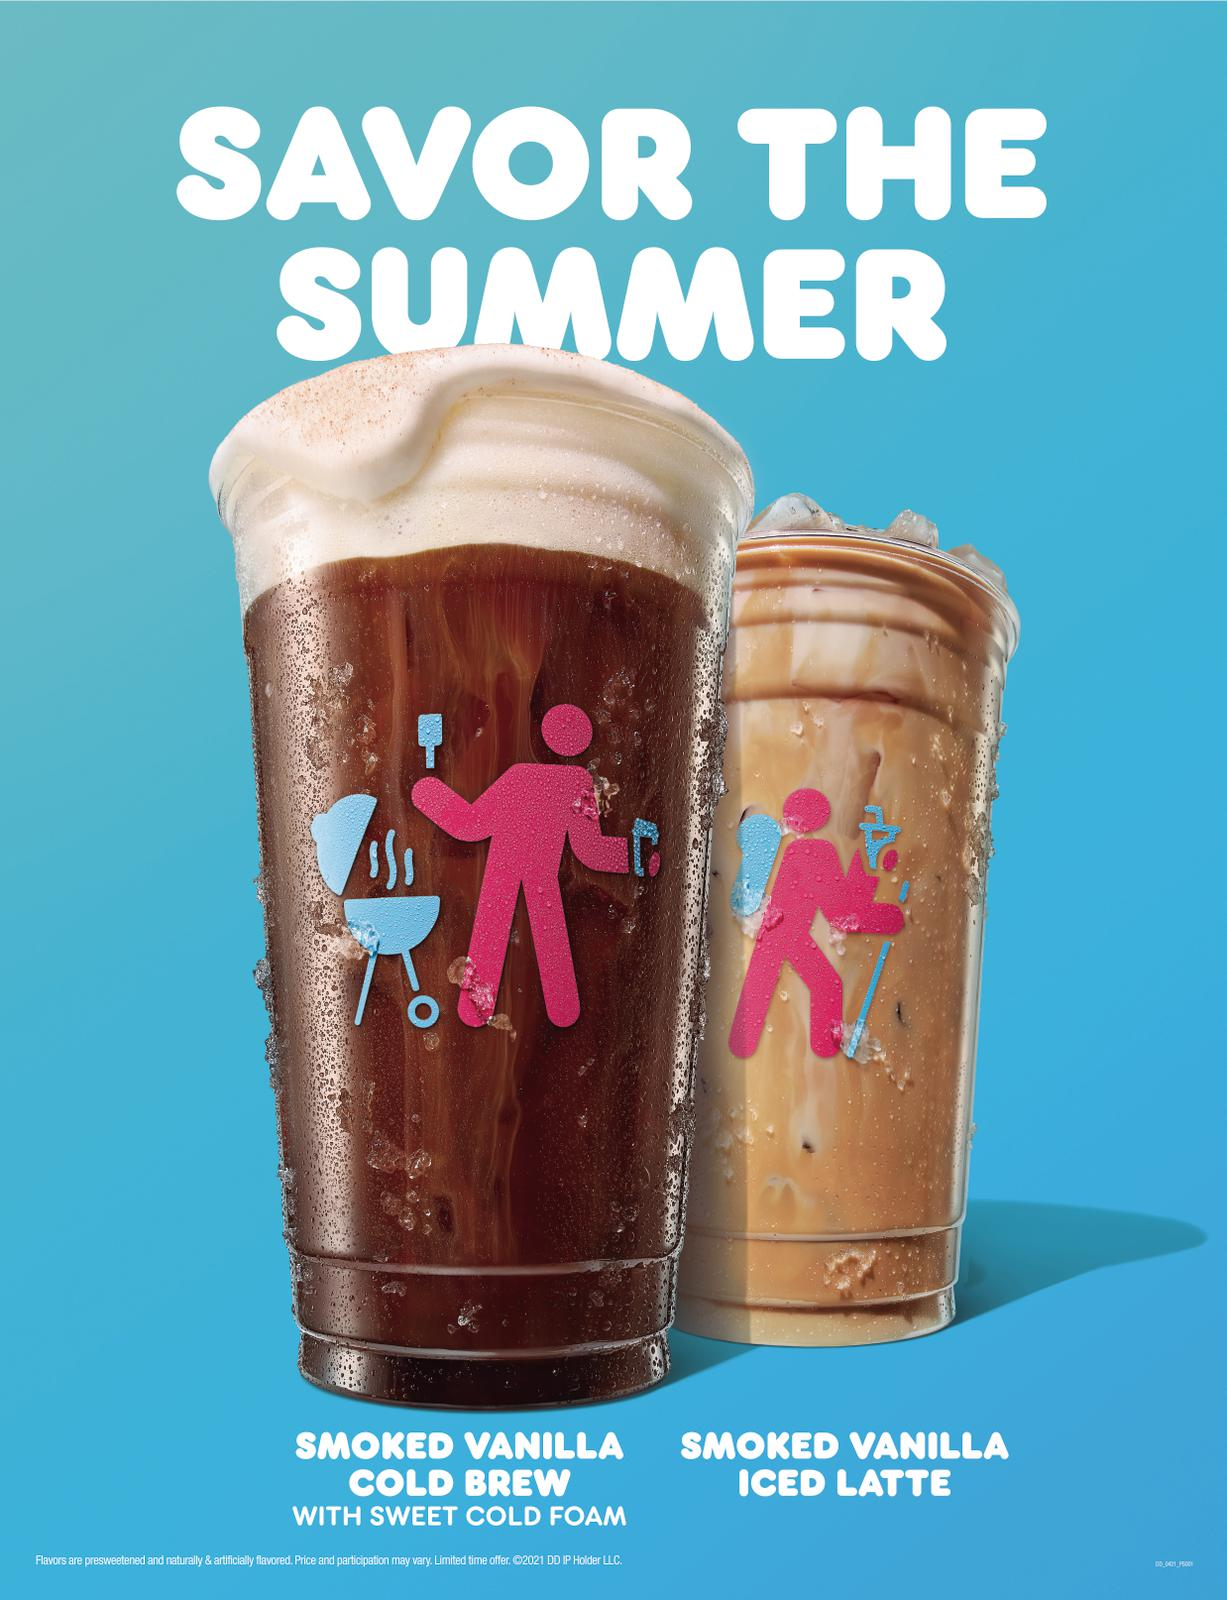 Dunkin' Smoked Vanilla Cold Brew with Sweet Cold Foam and Smoked Vanilla Iced Latte